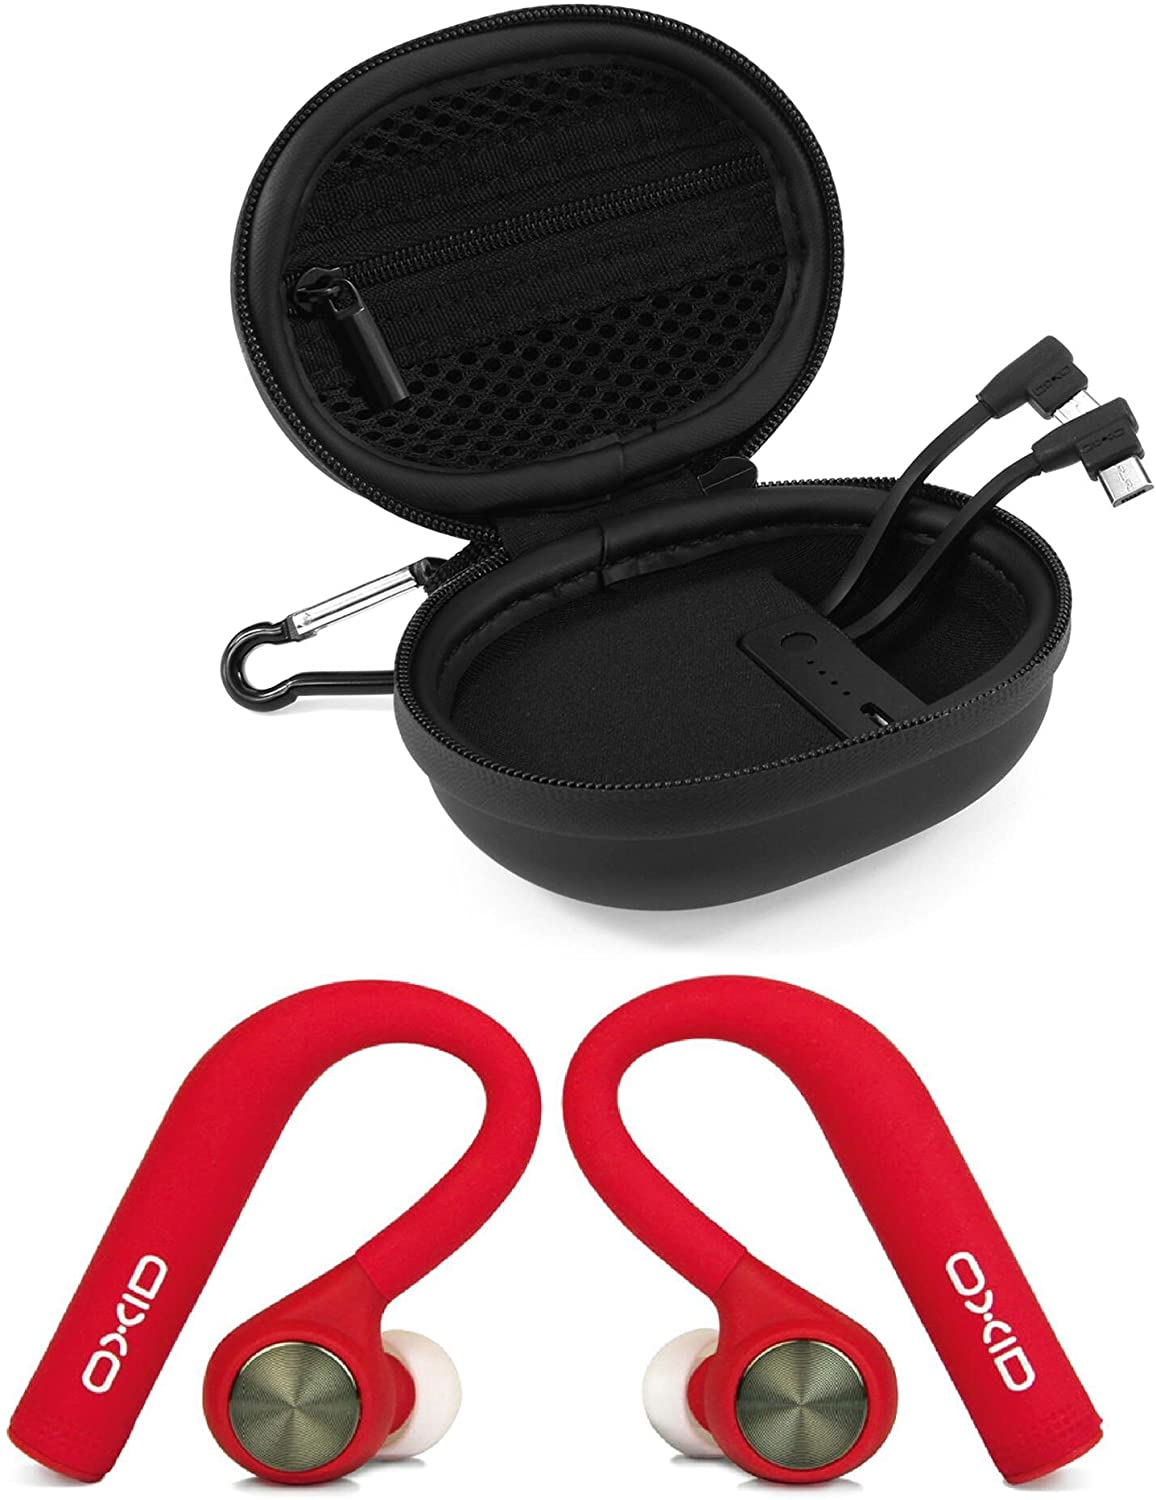 OXID AudioBuds True Wireless Bluetooth Headphones with Charging & Protective Case for Over 15 Hours Playtime - Unique Over-Ear Design Stays in Place While Running - Compatible with Apple/Android (Red)